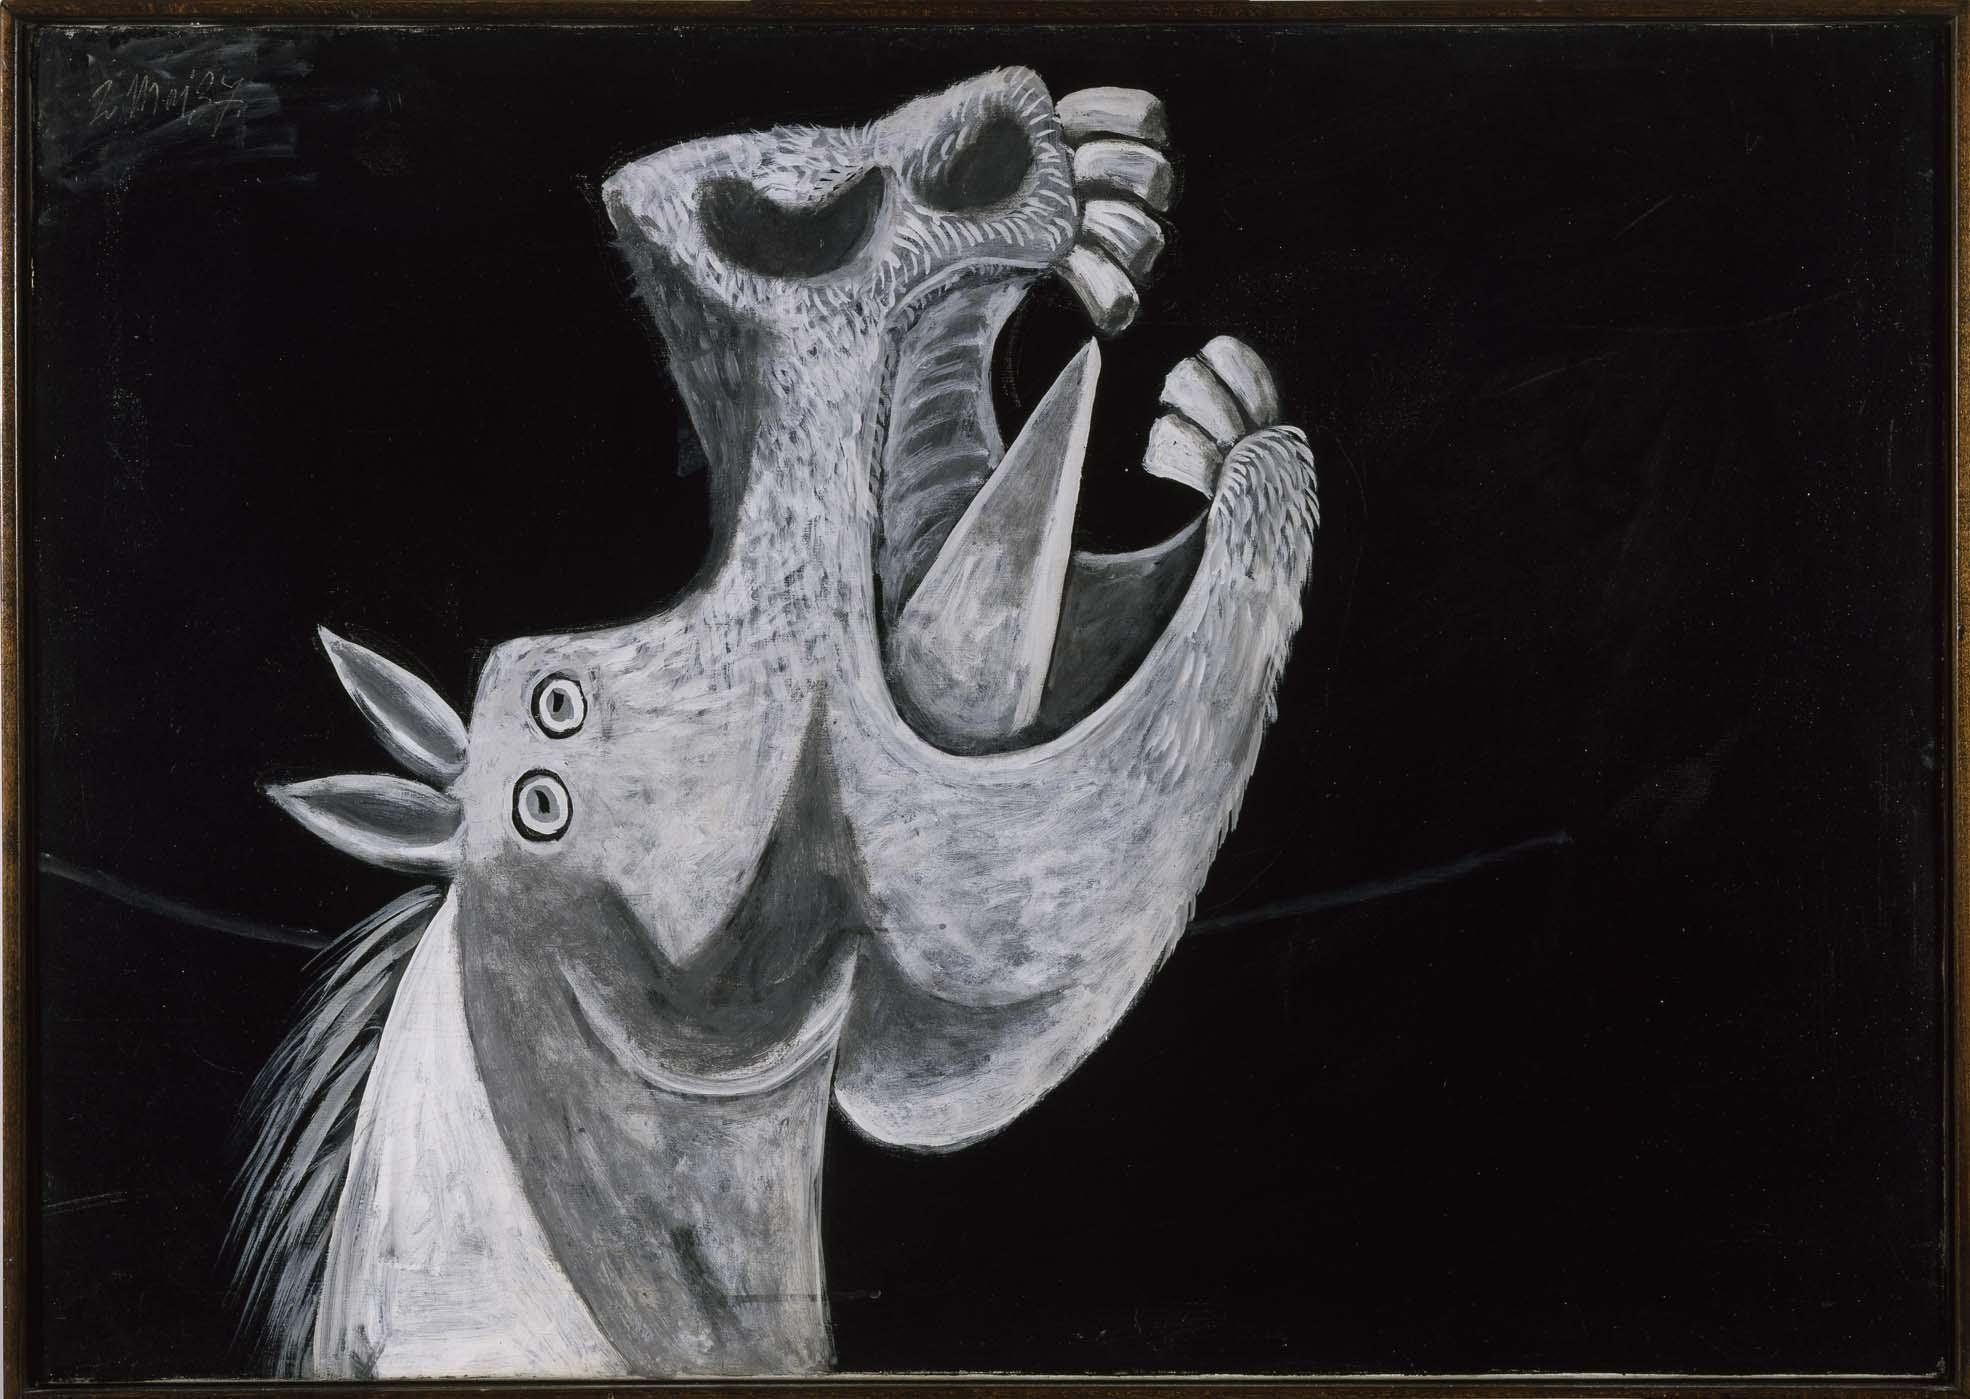 Pablo Picasso's study of a stressed horse for 'Guernica'